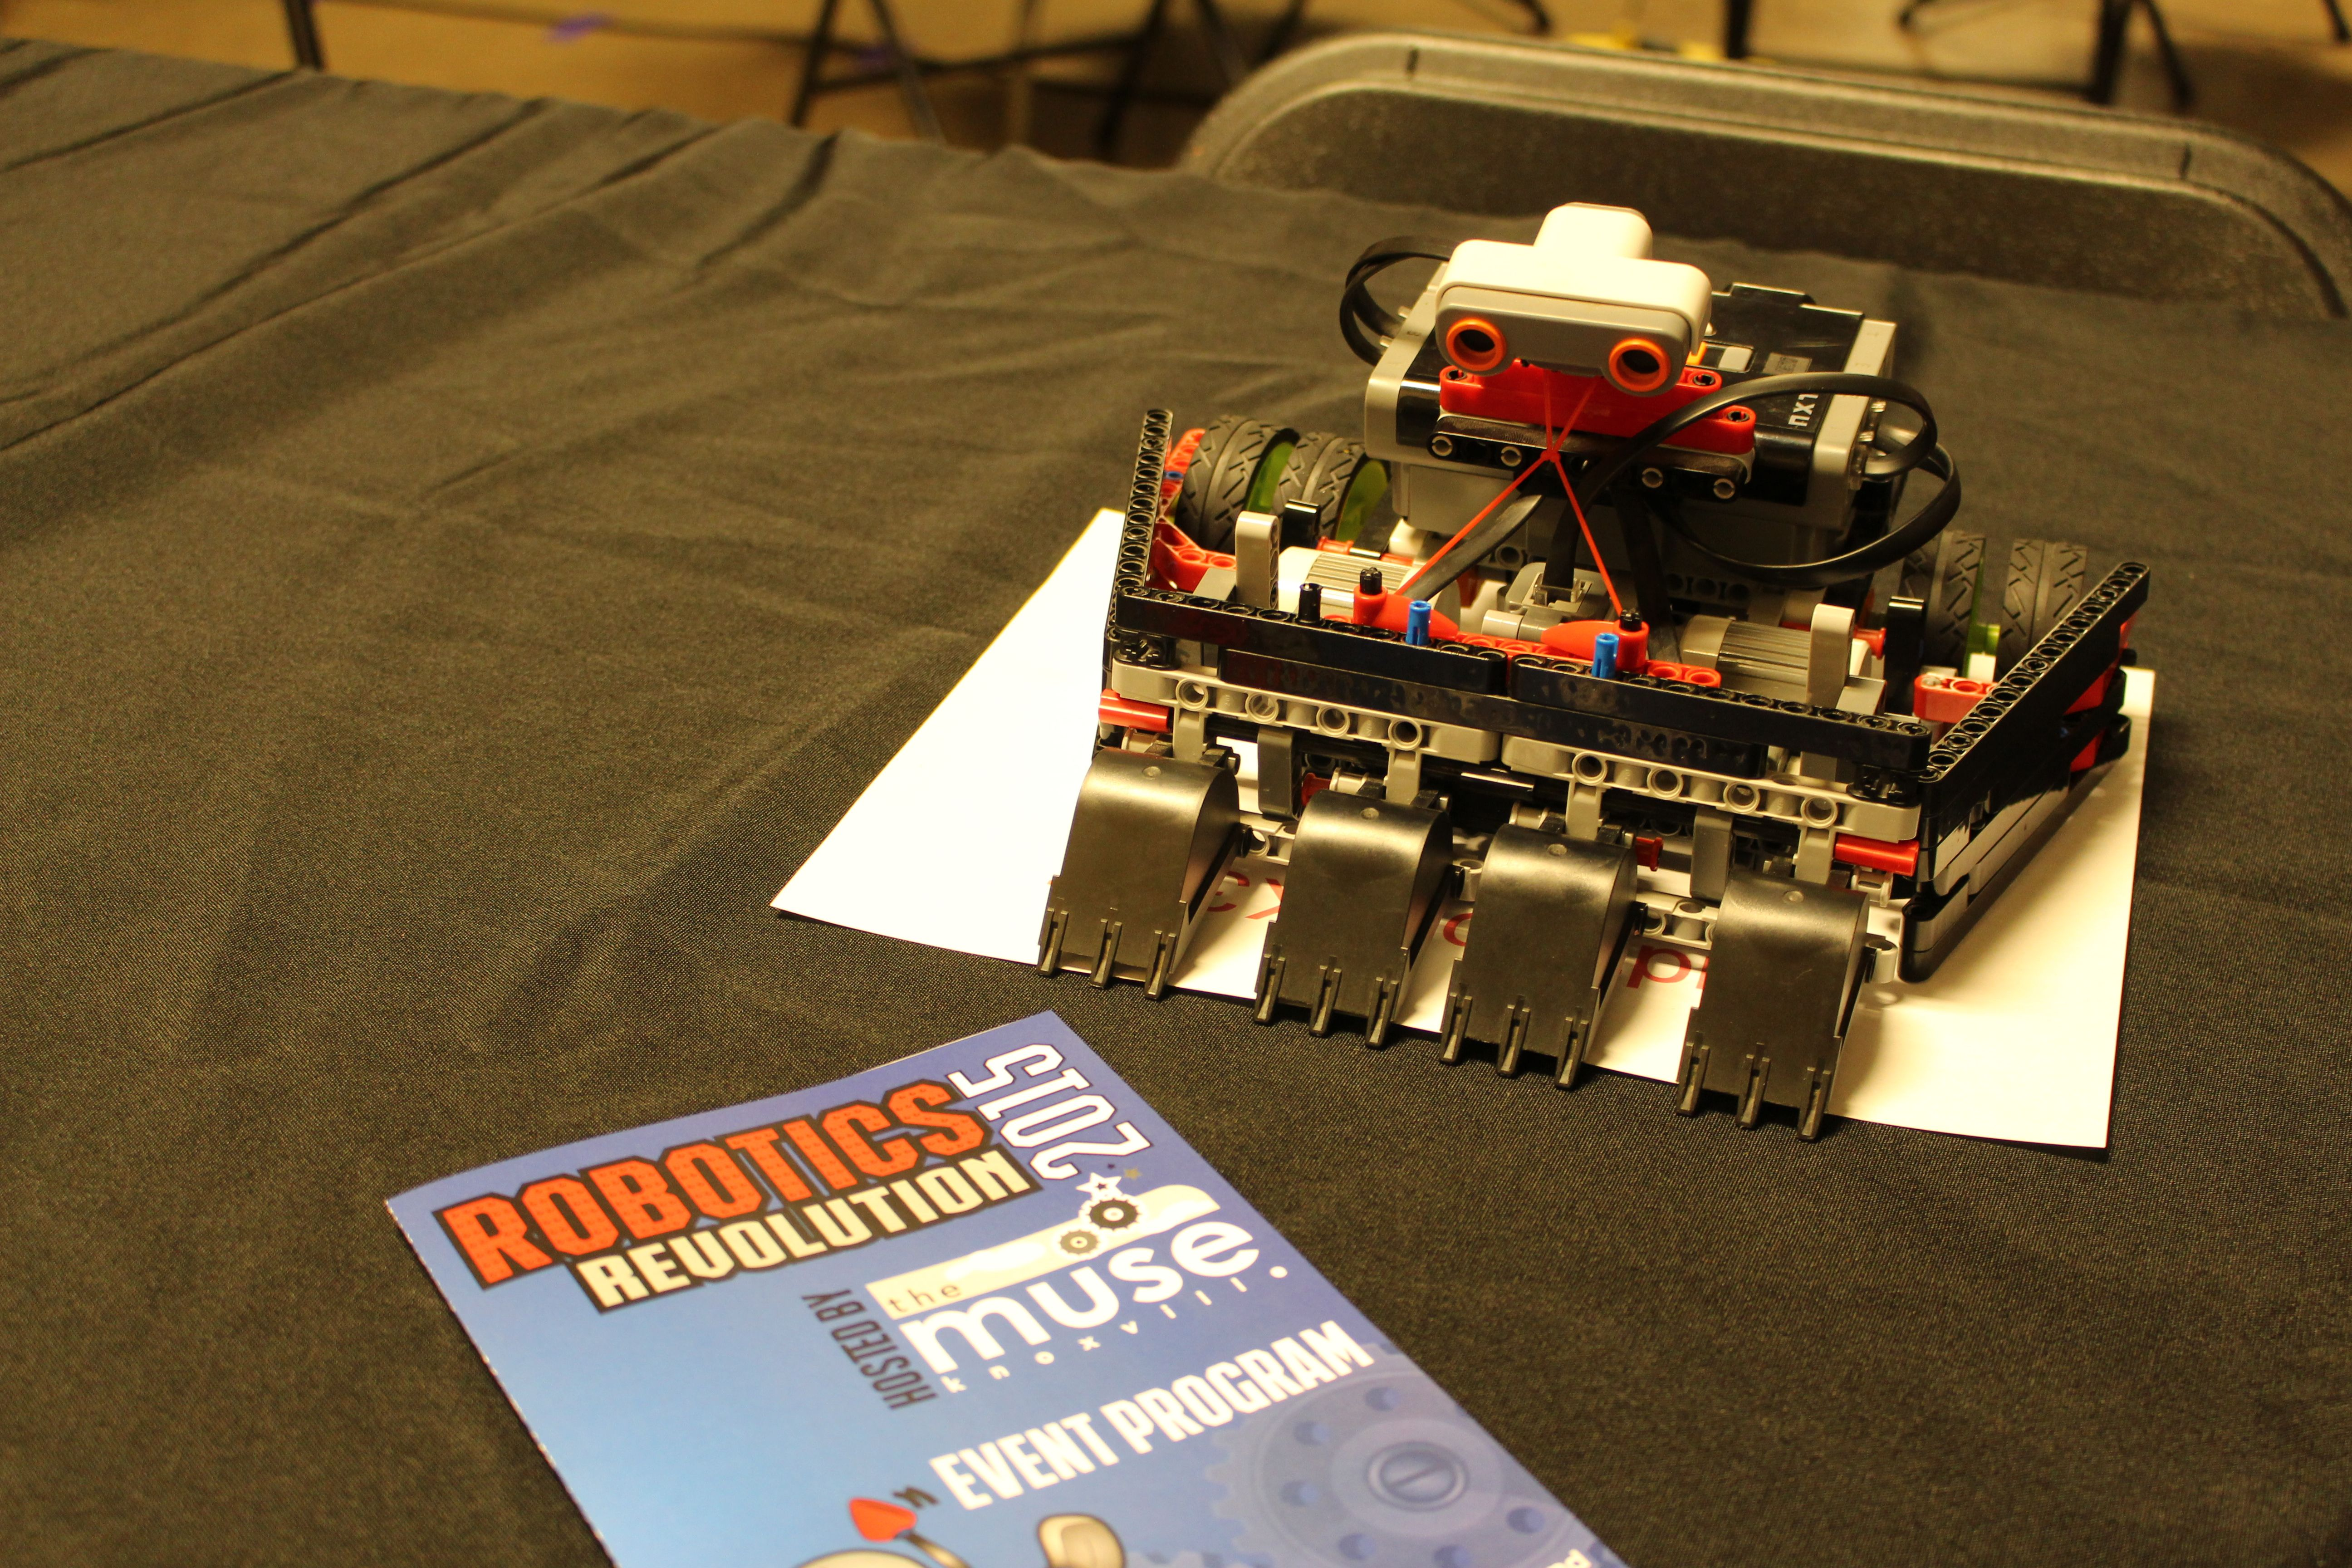 An eight-year-old boy attends Robotics Revolution sponsored by The Muse and writes about some of the robots on display and one special little robot.